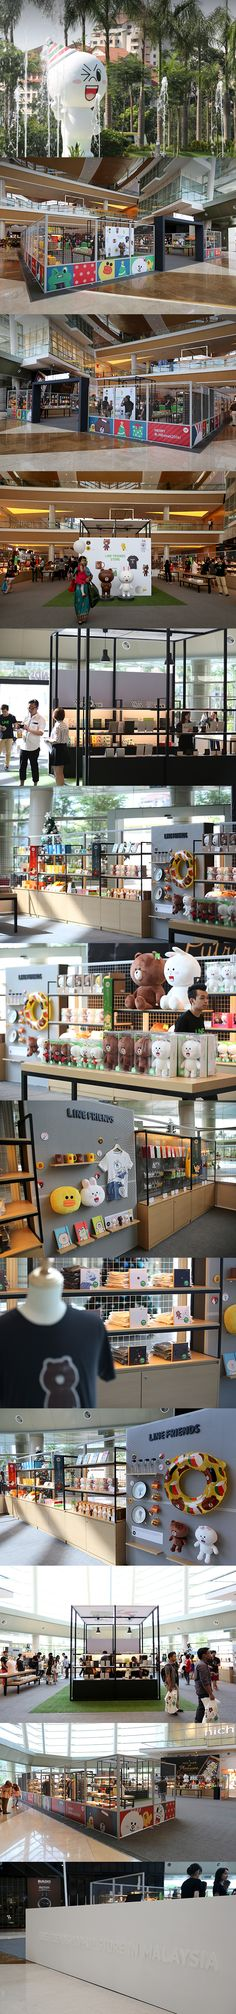 LINE FRIENDS POP-UP STORE IN MALAYSIA on Behance